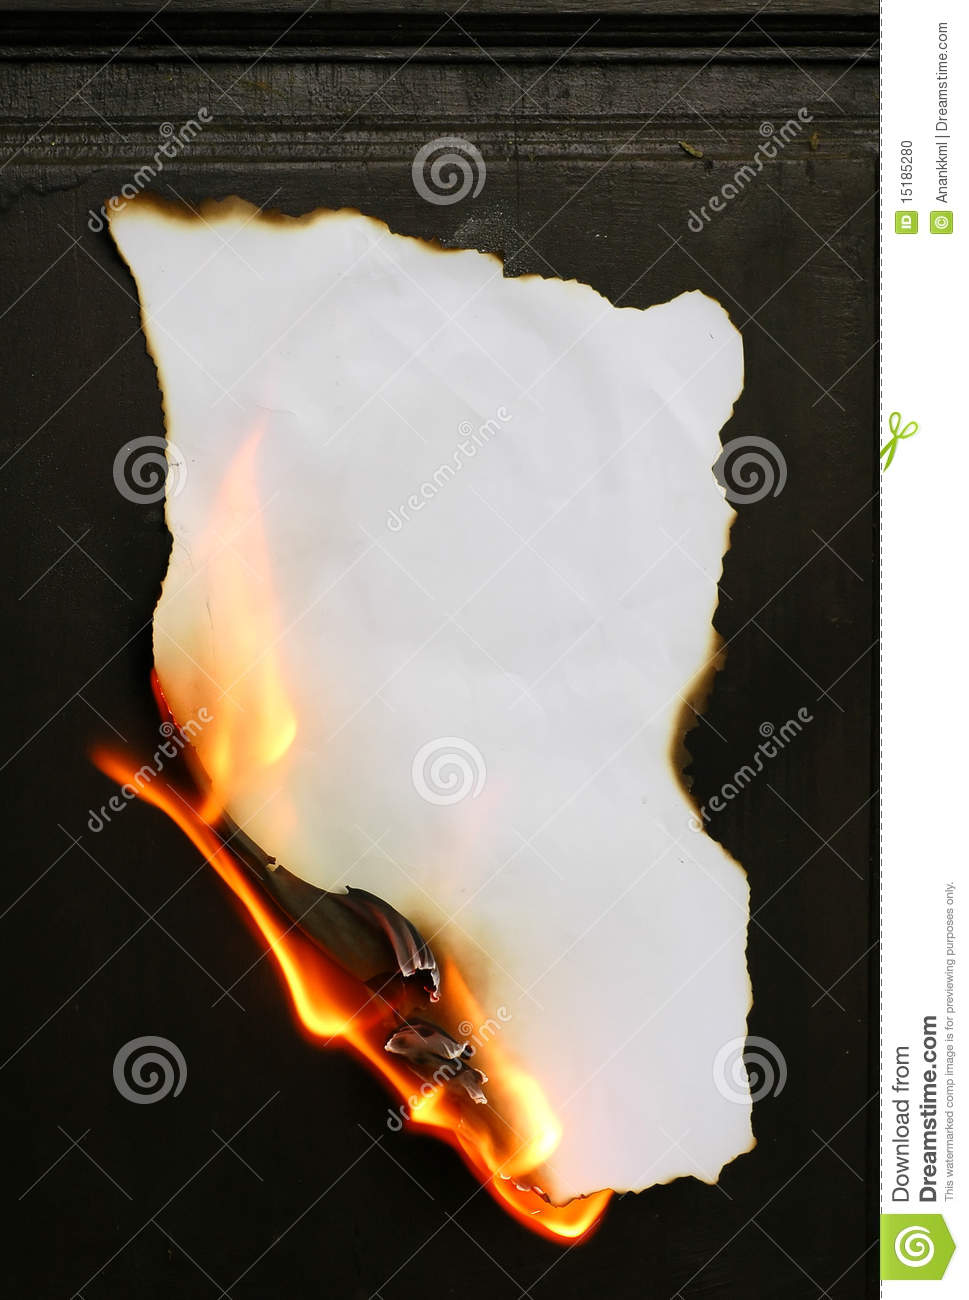 burning paper stock photo image 15185280